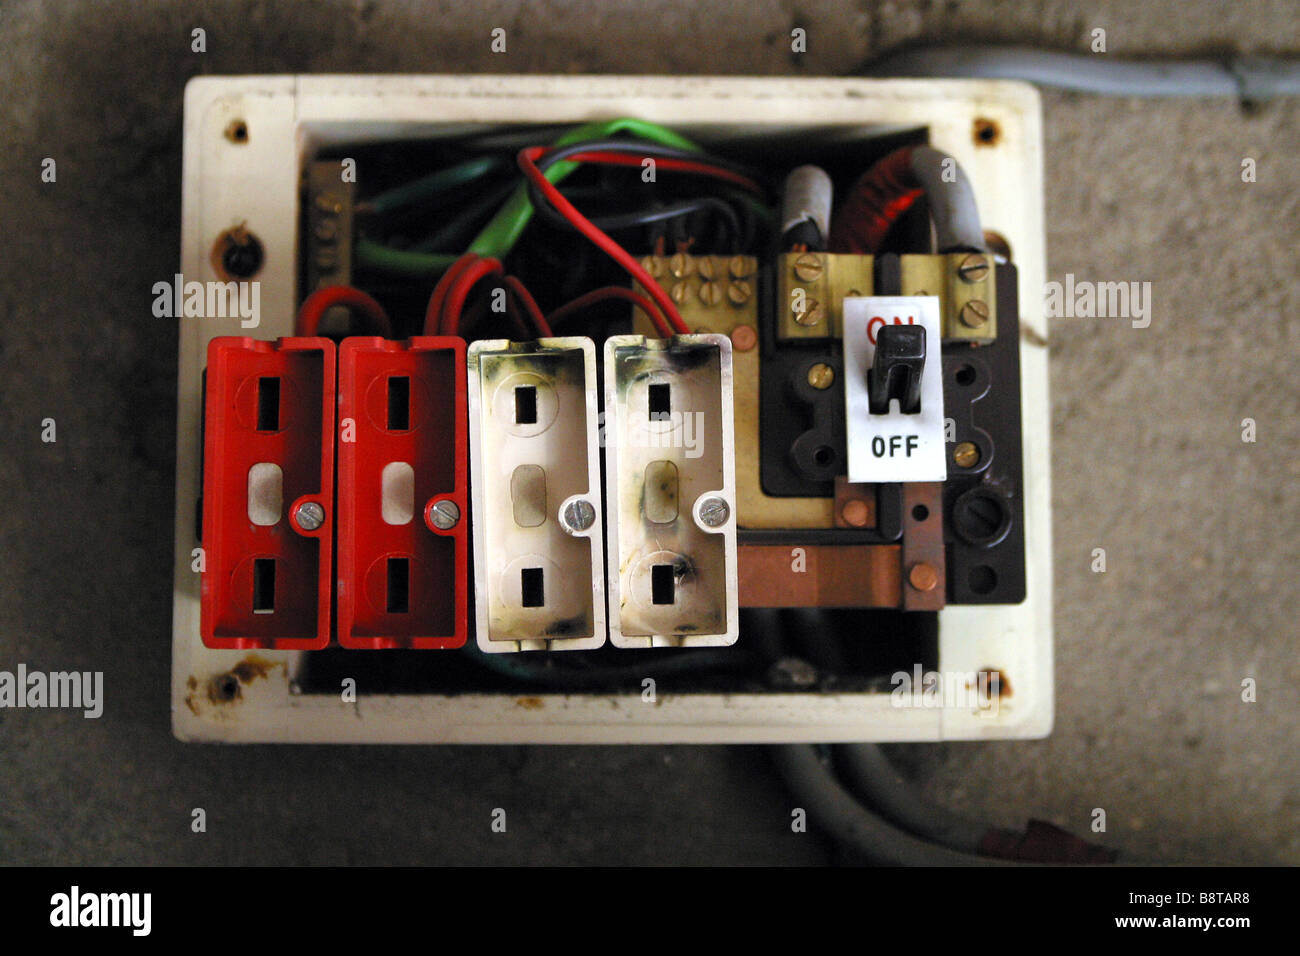 medium resolution of fuses for fuse box house simple wiring diagram schema old screw in fuse boxes replacing old